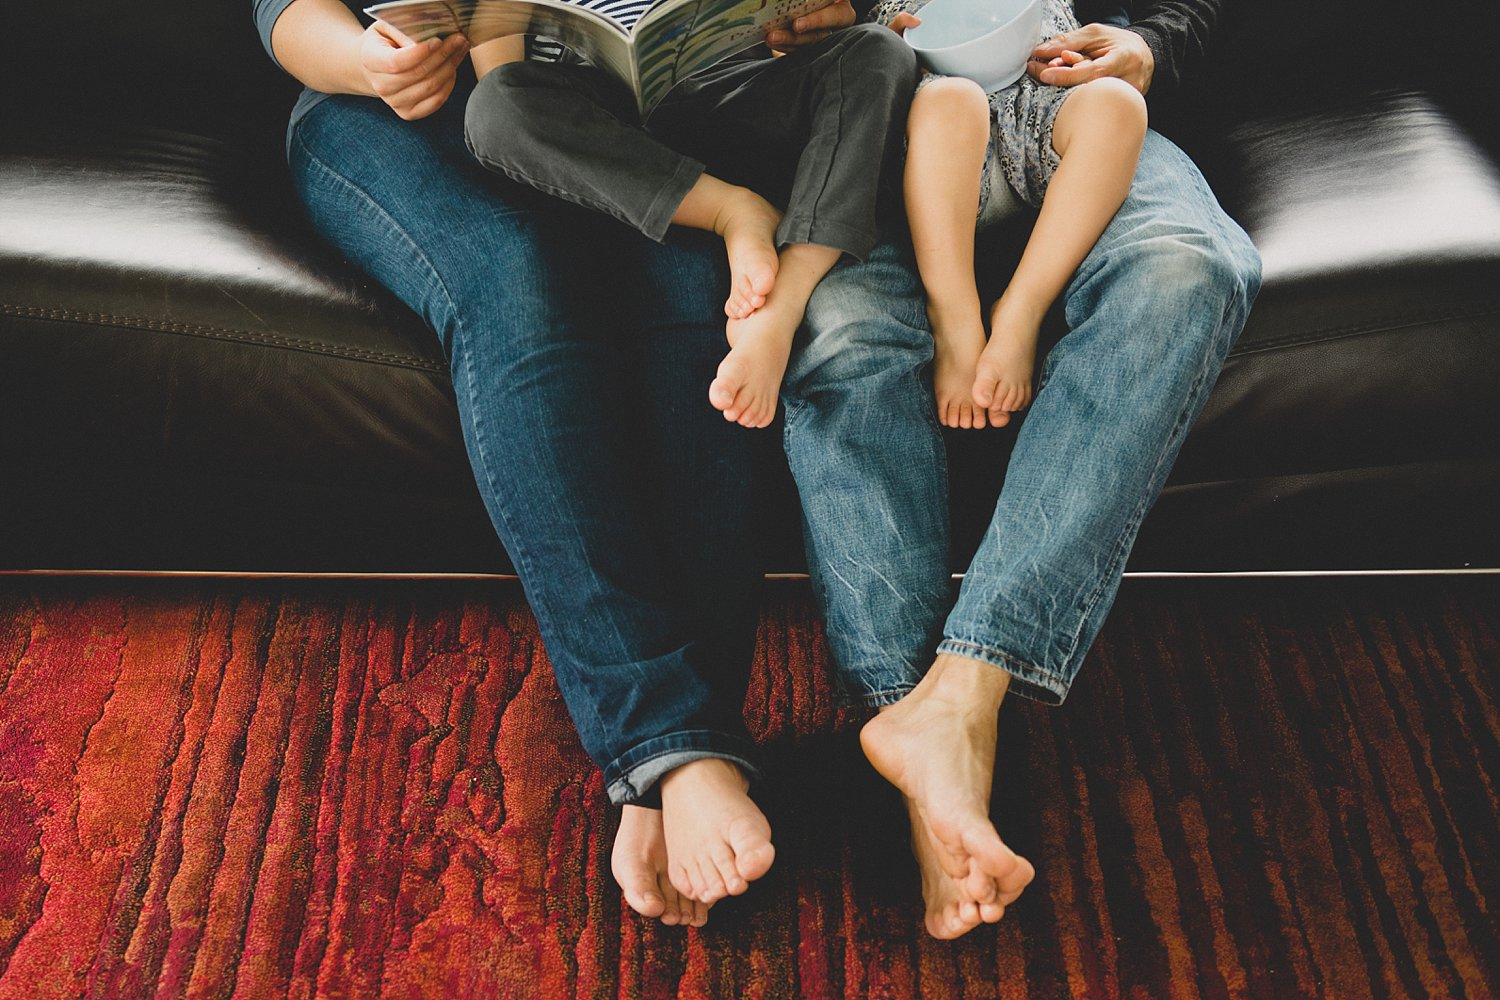 family's legs - 5 Tips for Doing Lifestyle Photo Sessions